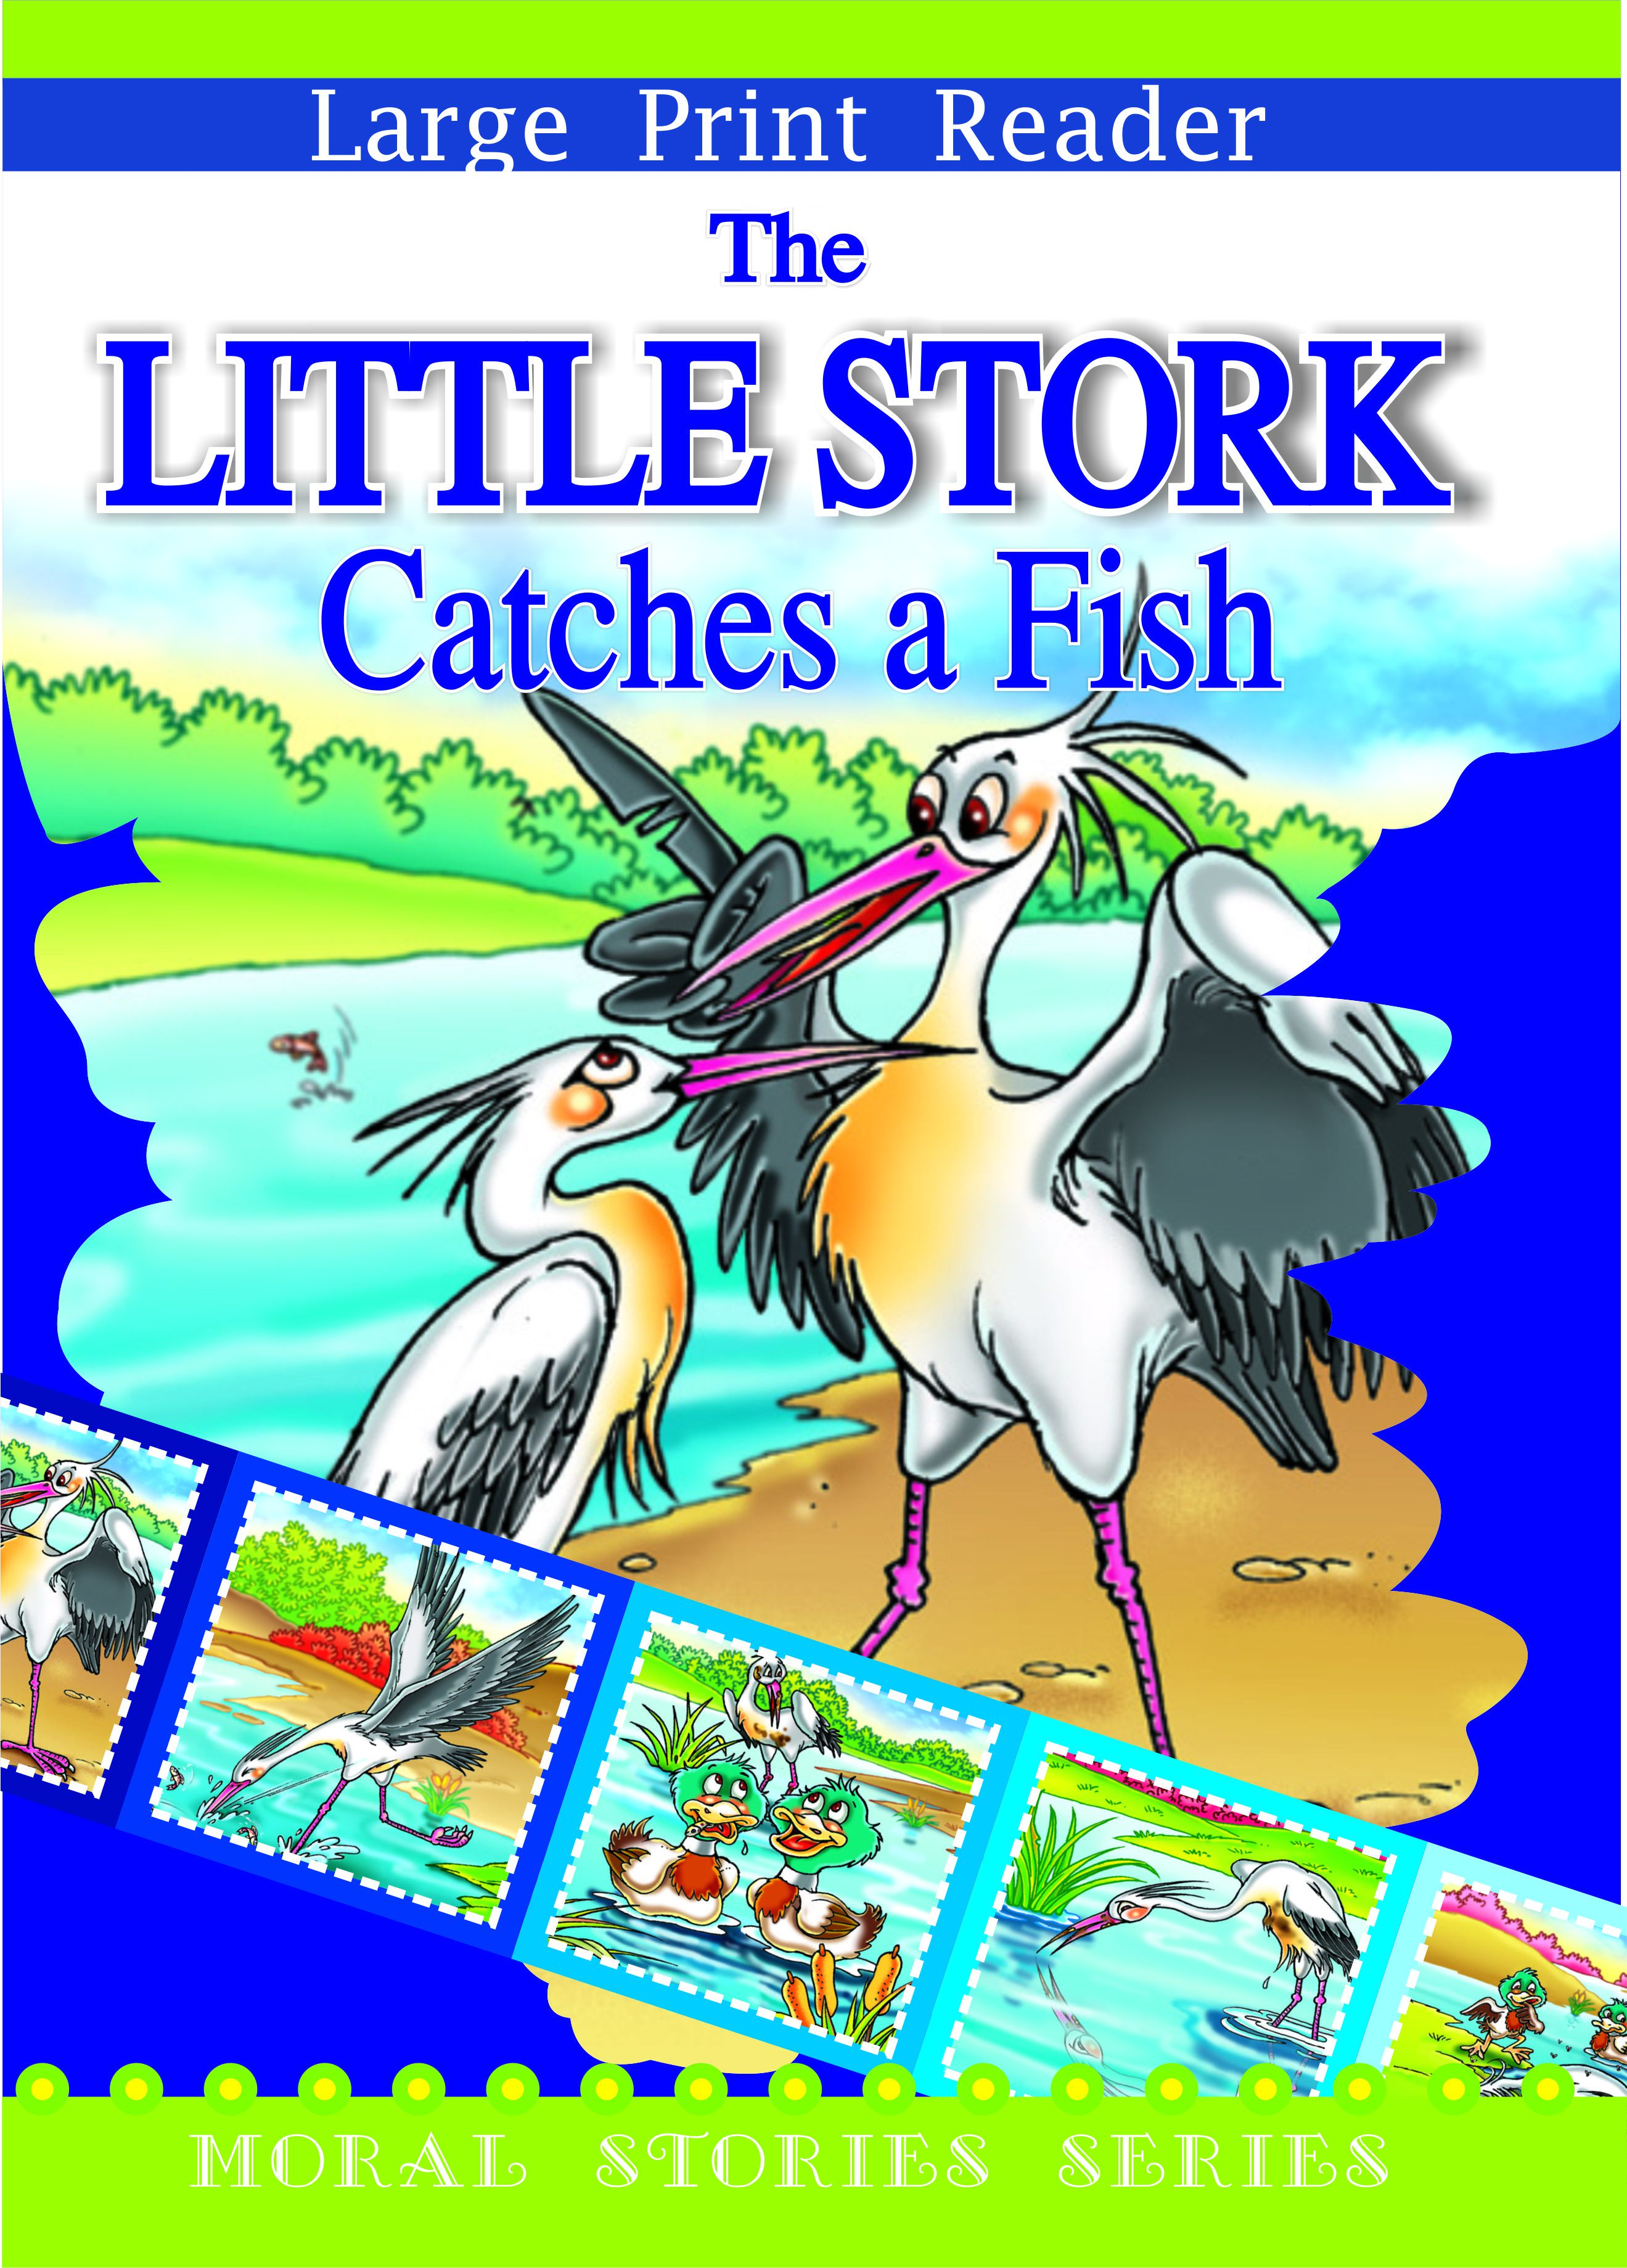 The Little Stork Catches A Fish - Moral Stories Small Size English